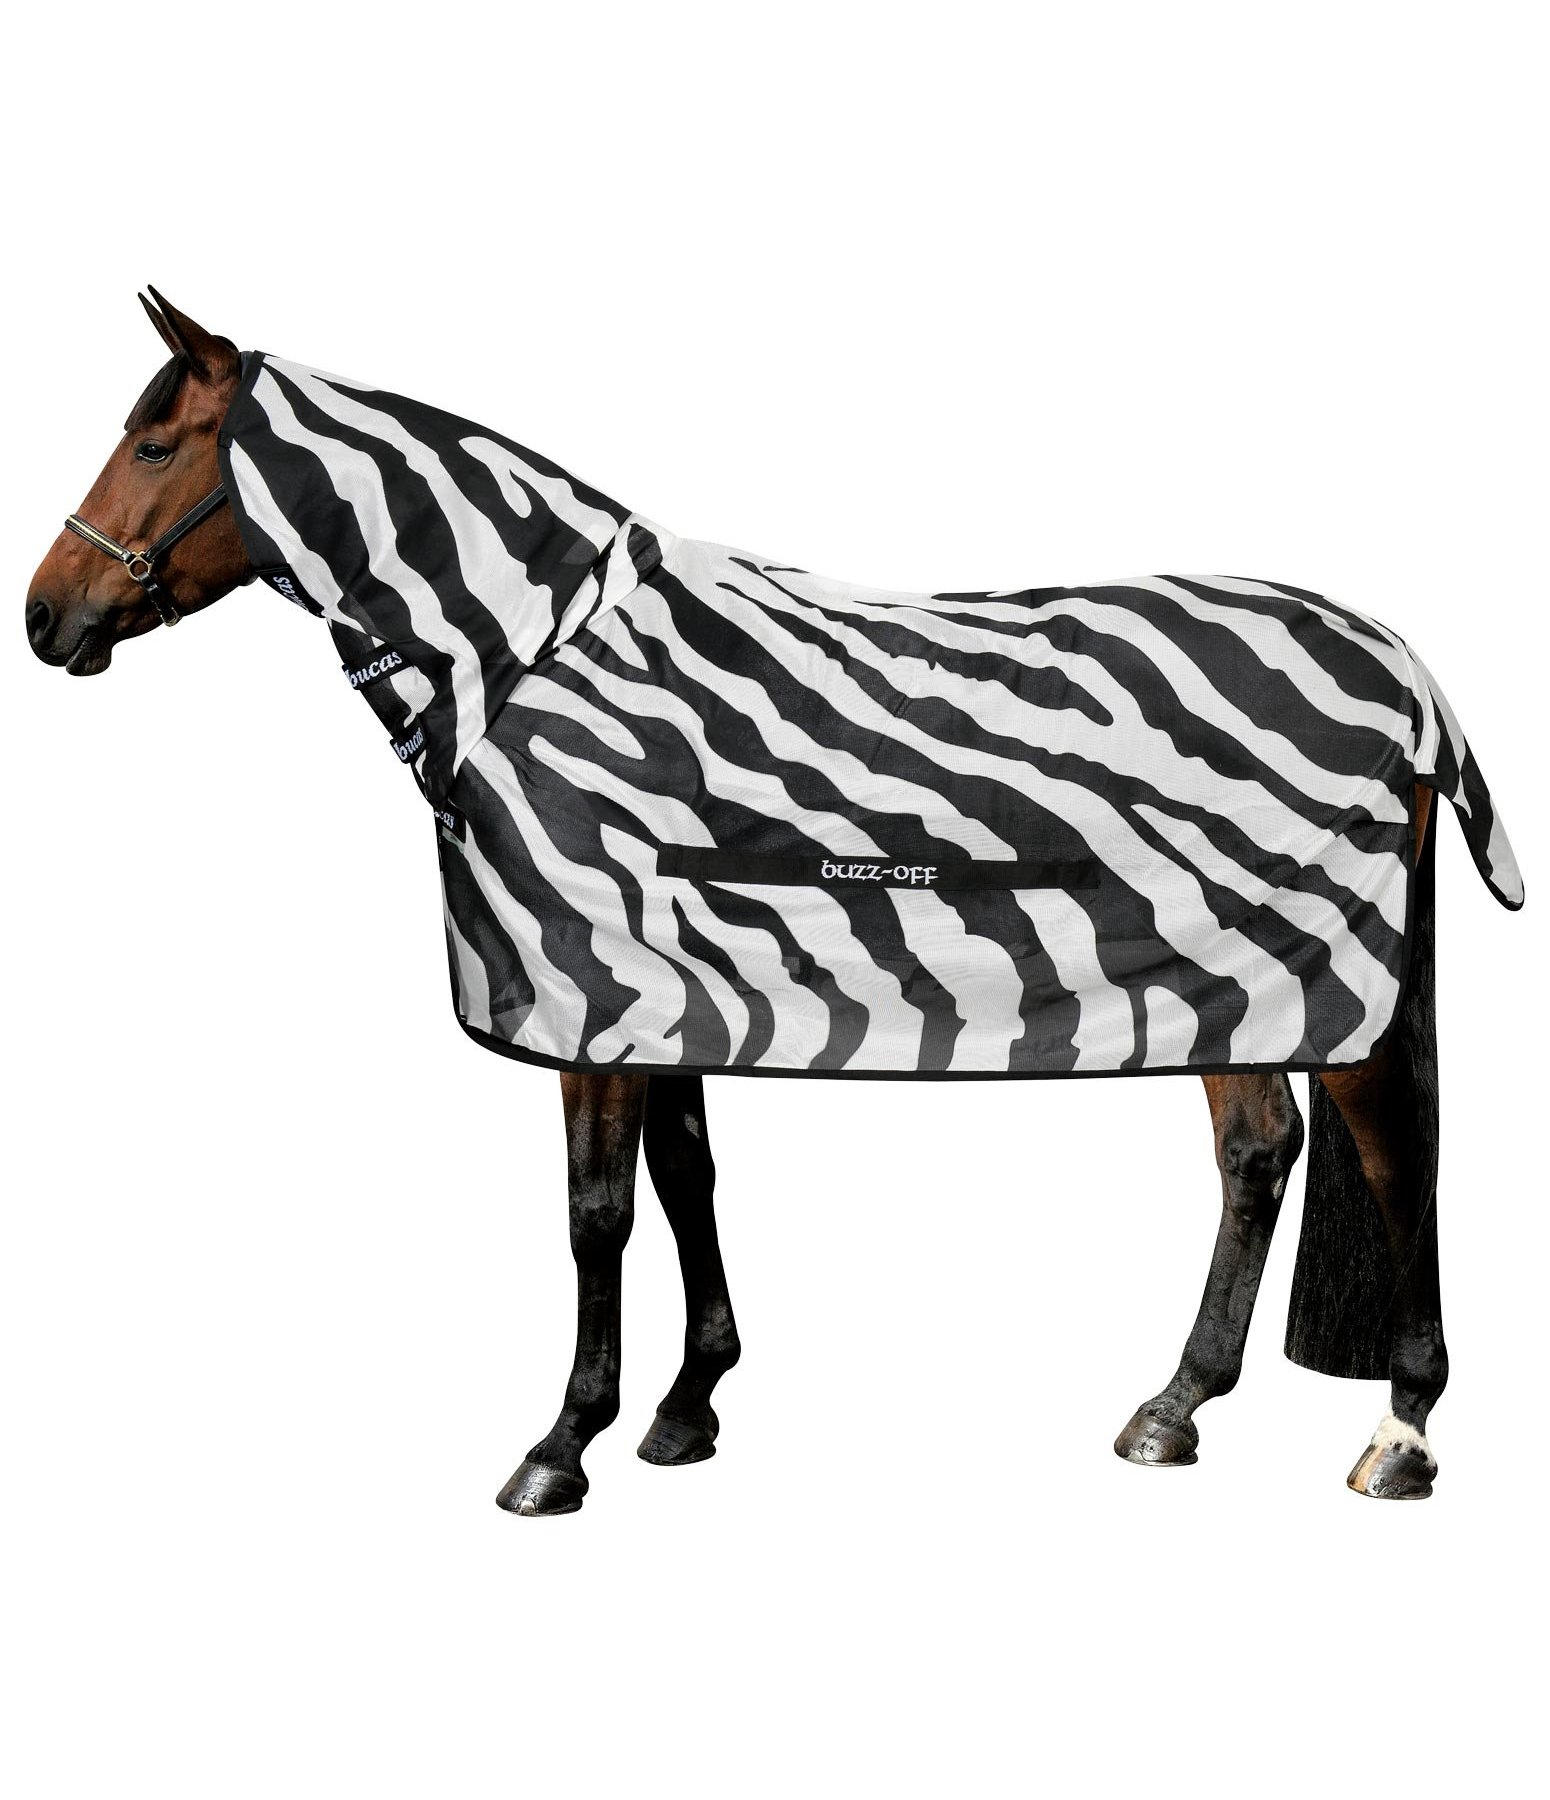 Buzz-Off Full Neck Fly Rug Zebra, UV 70+